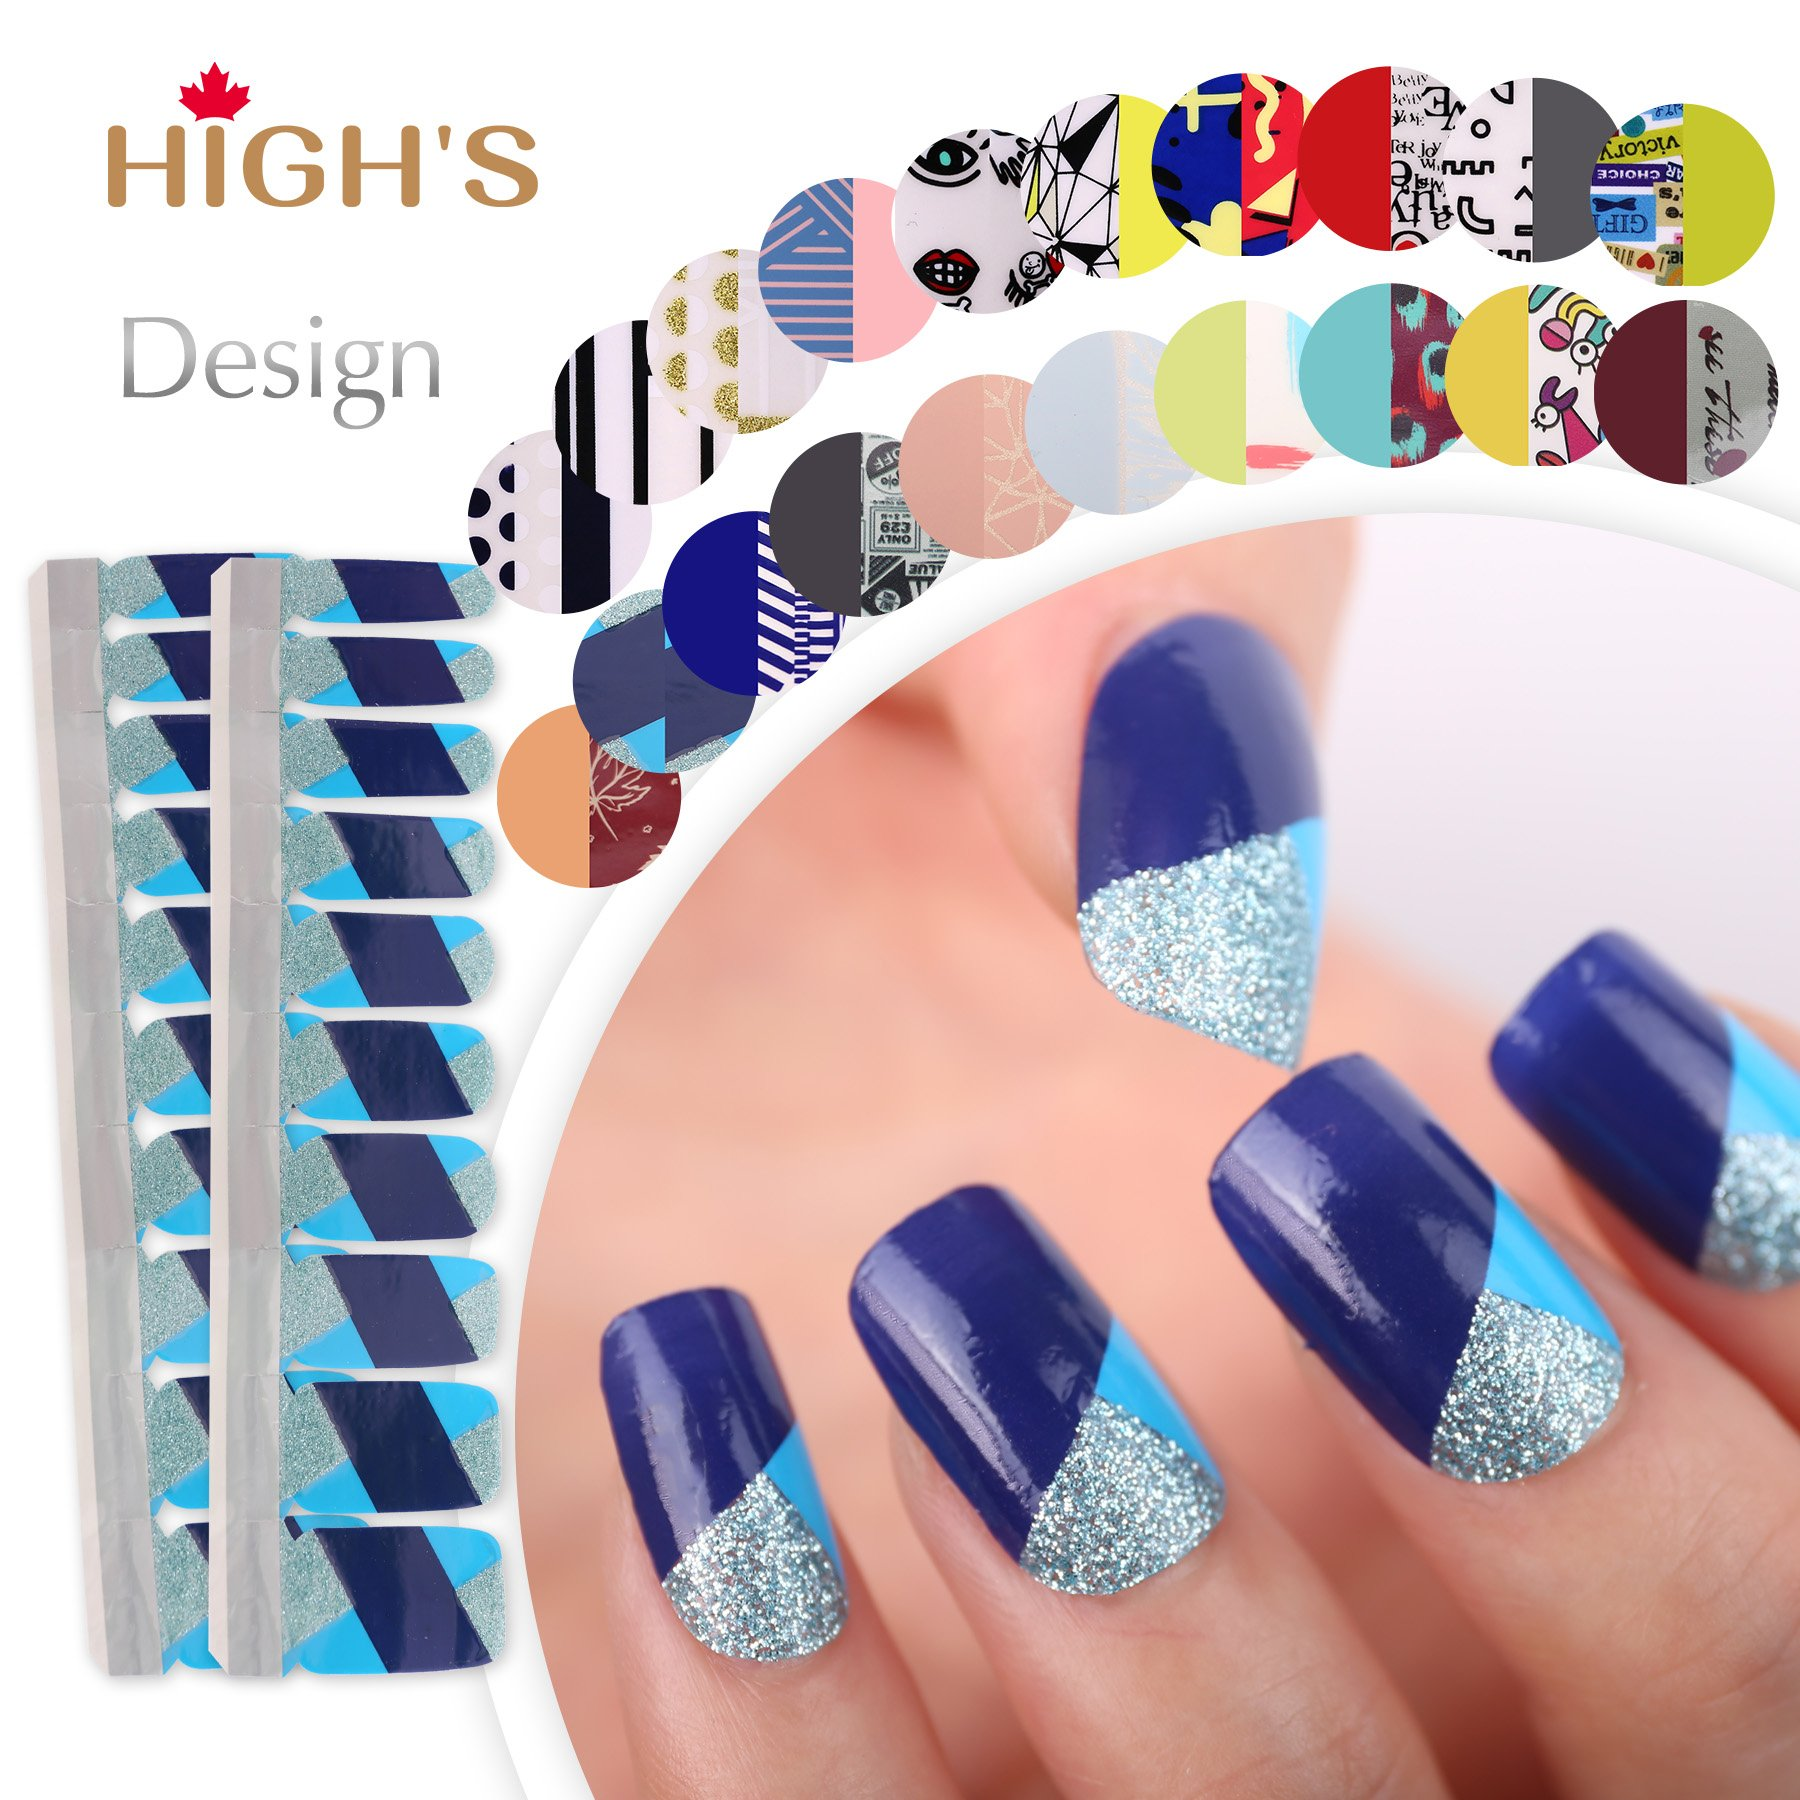 HIGH'S EXTRE ADHESION 20pcs Nail Art Transfer Decals Sticker Design Series  The Cocktail Collection Manicure DIY